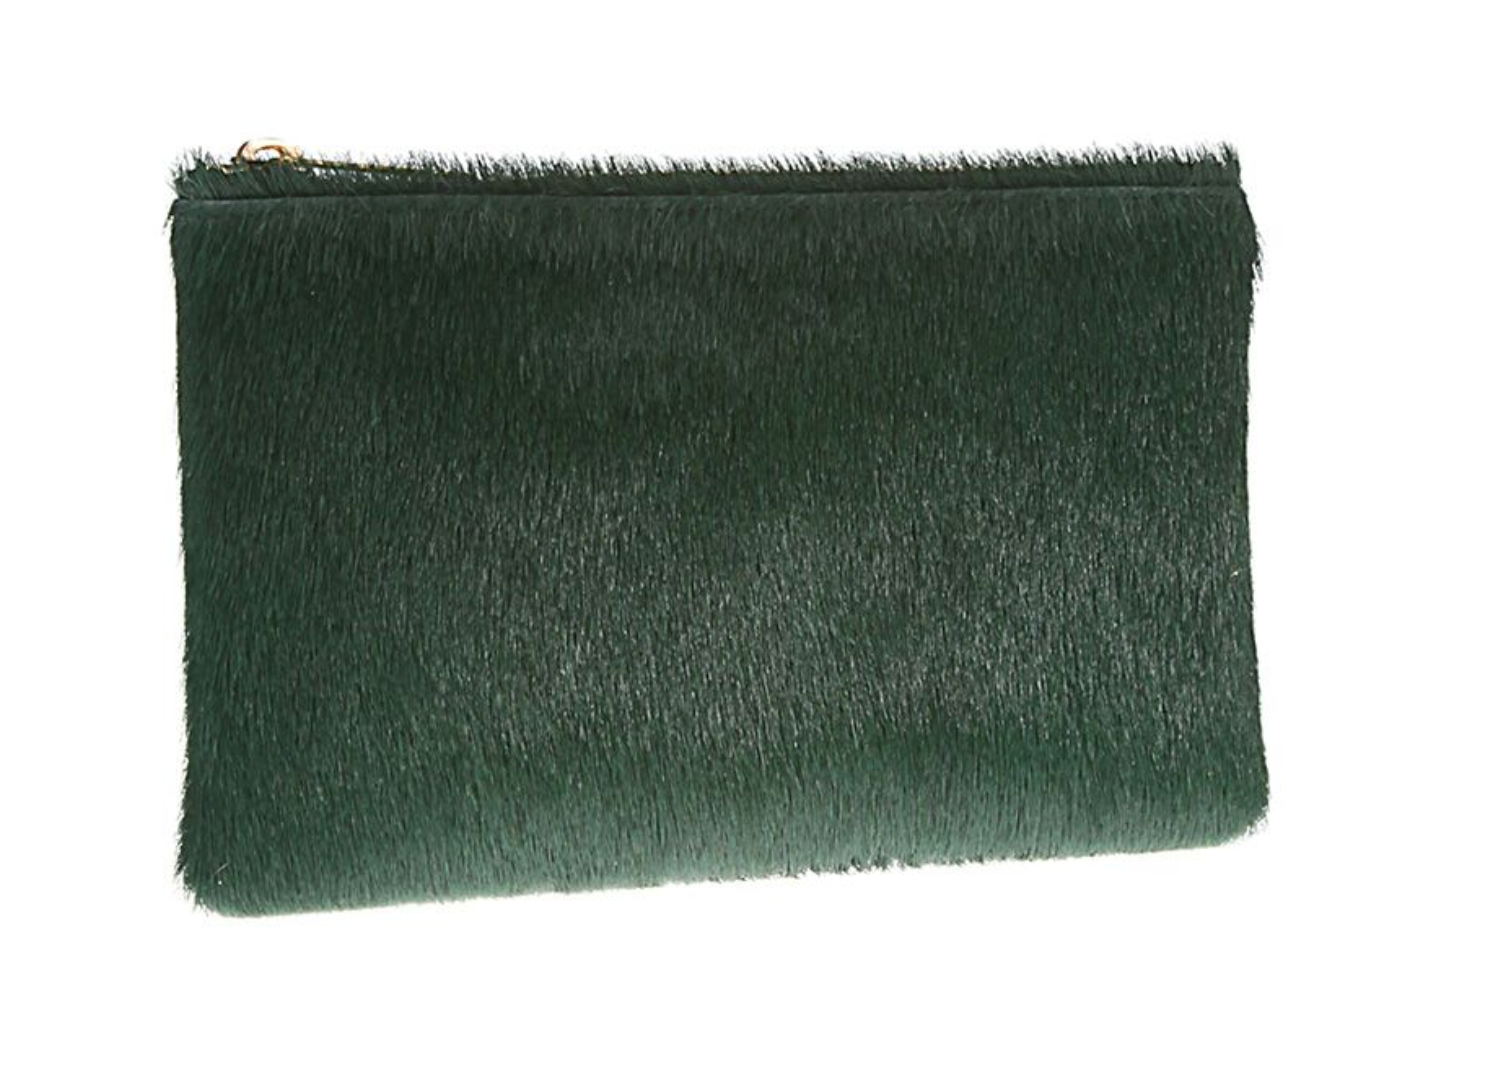 Zip Pouch in Emerald